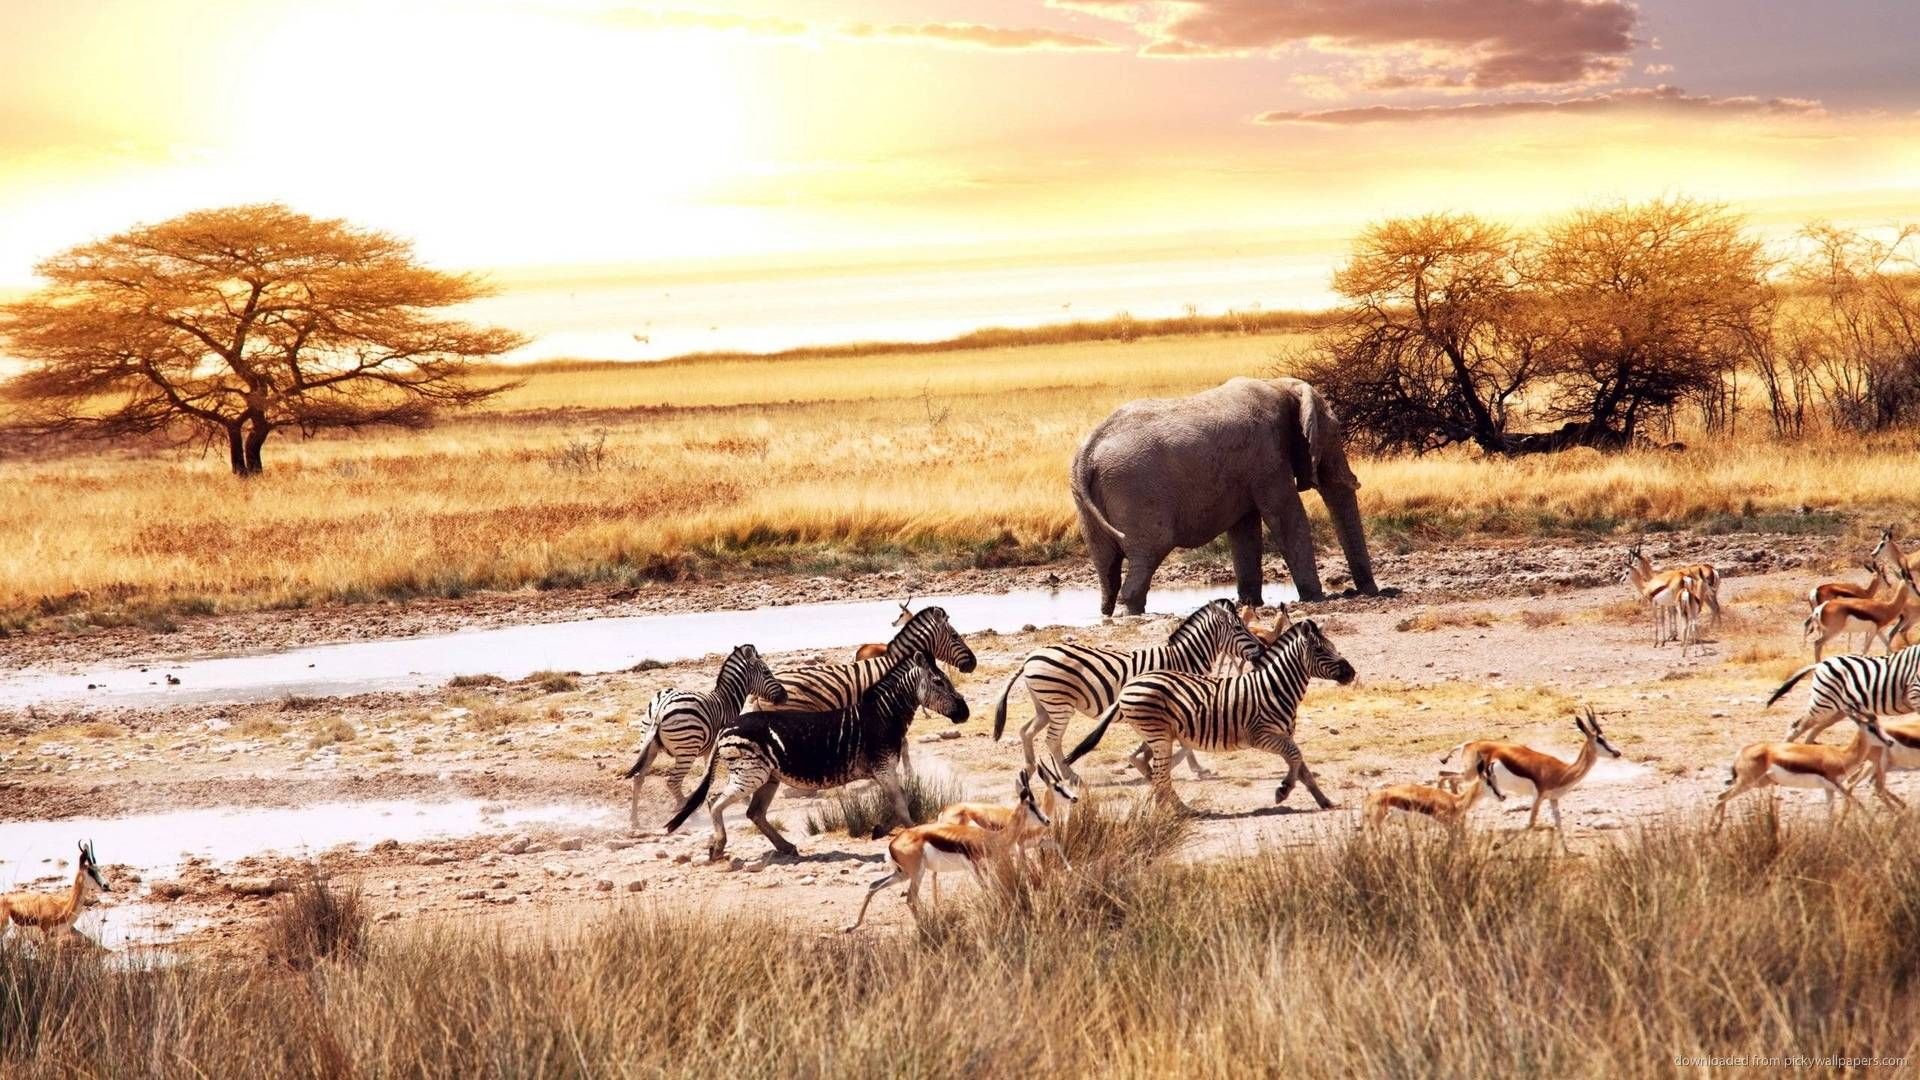 African Savanna - Desktop Wallpaper | Elefantes, Animales, Sabana ...